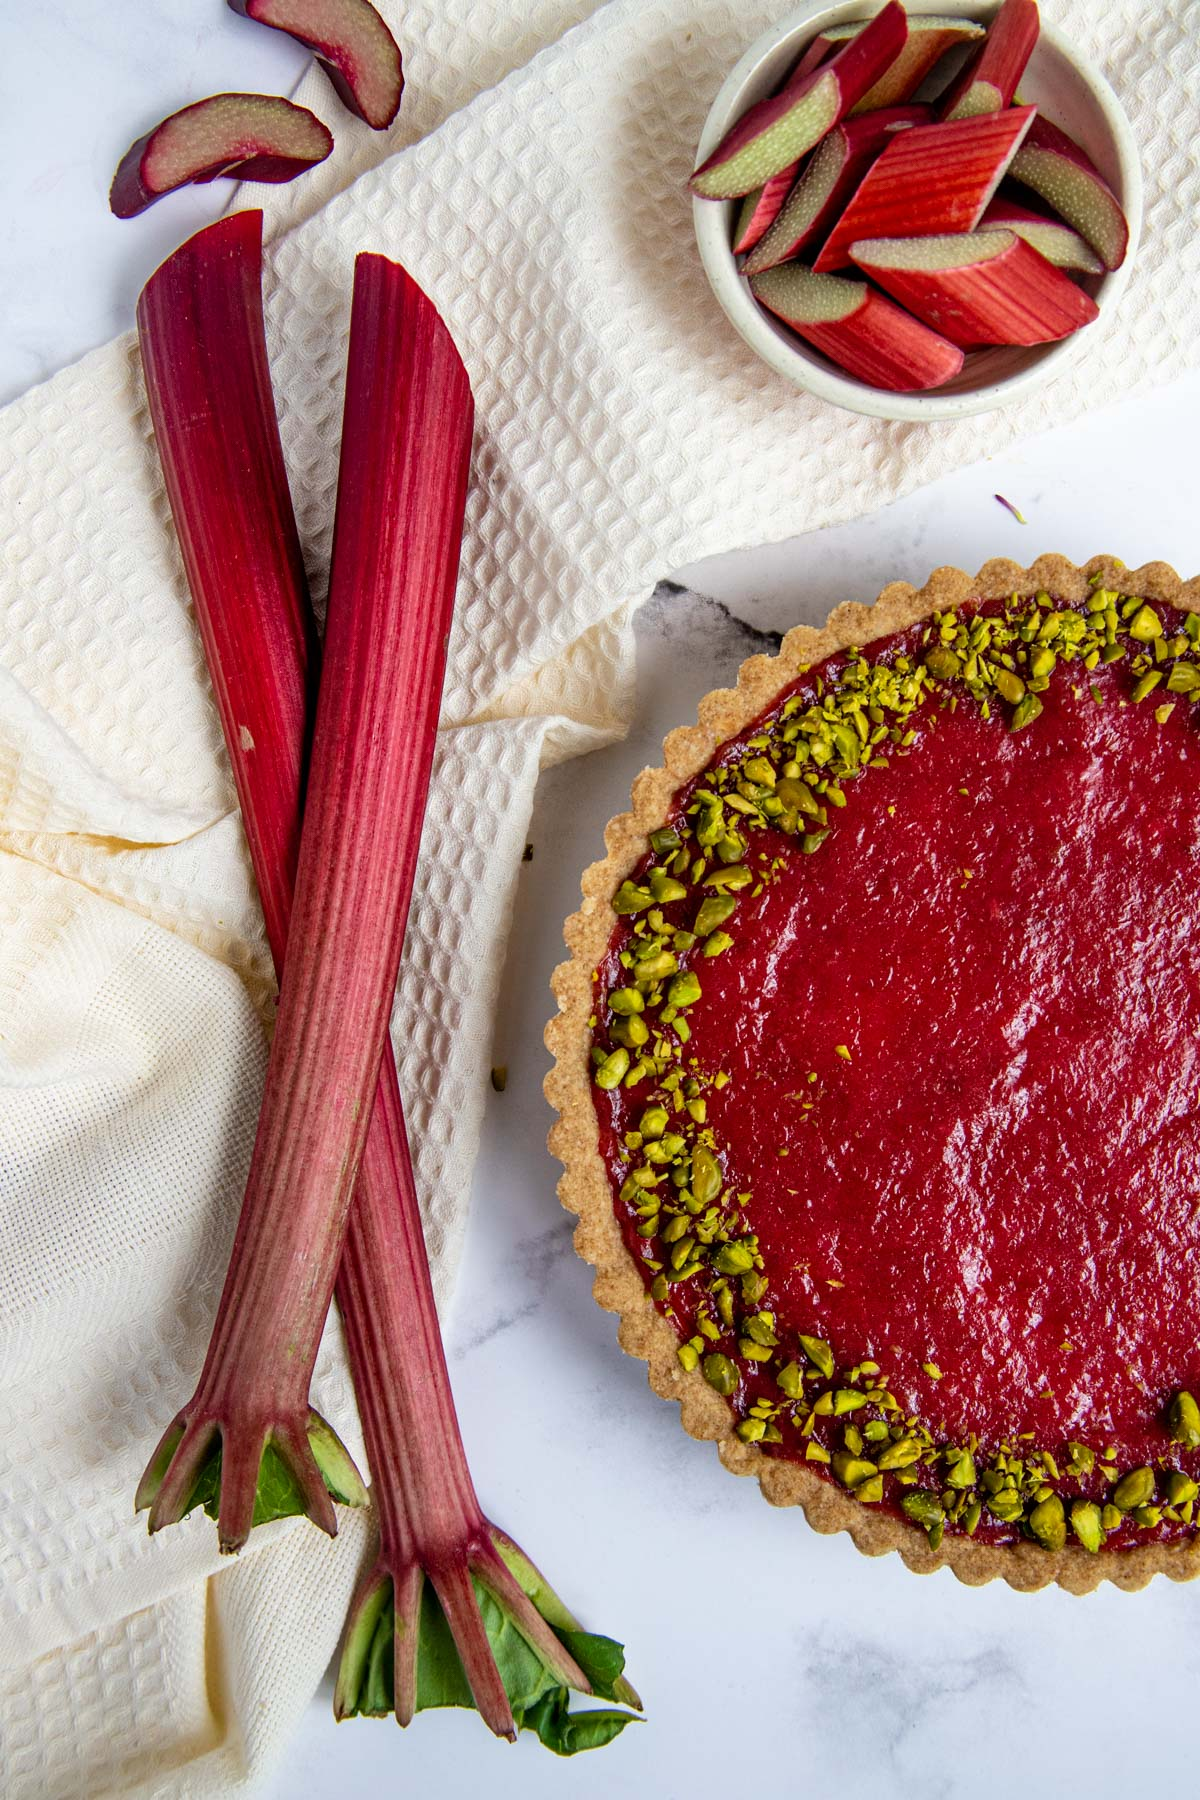 Rhubarb cream tart with stalks of rhubarb and chopped rhubarb next to the tart. The rhubarb tart is sprinkled wi